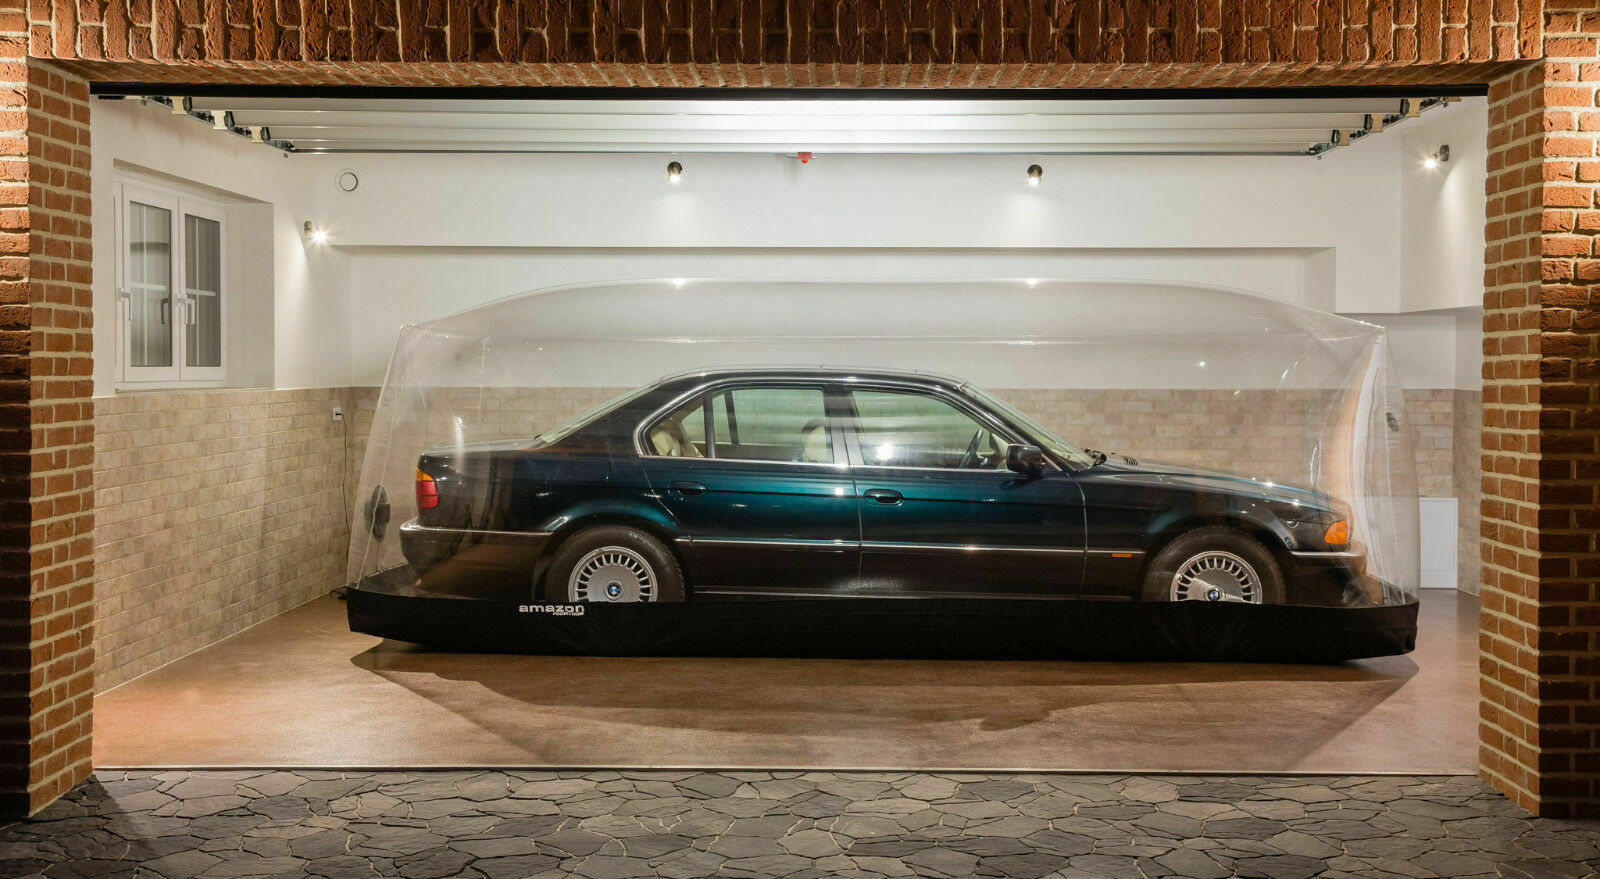 BMW-7-series-740i-1998-for-sale-1